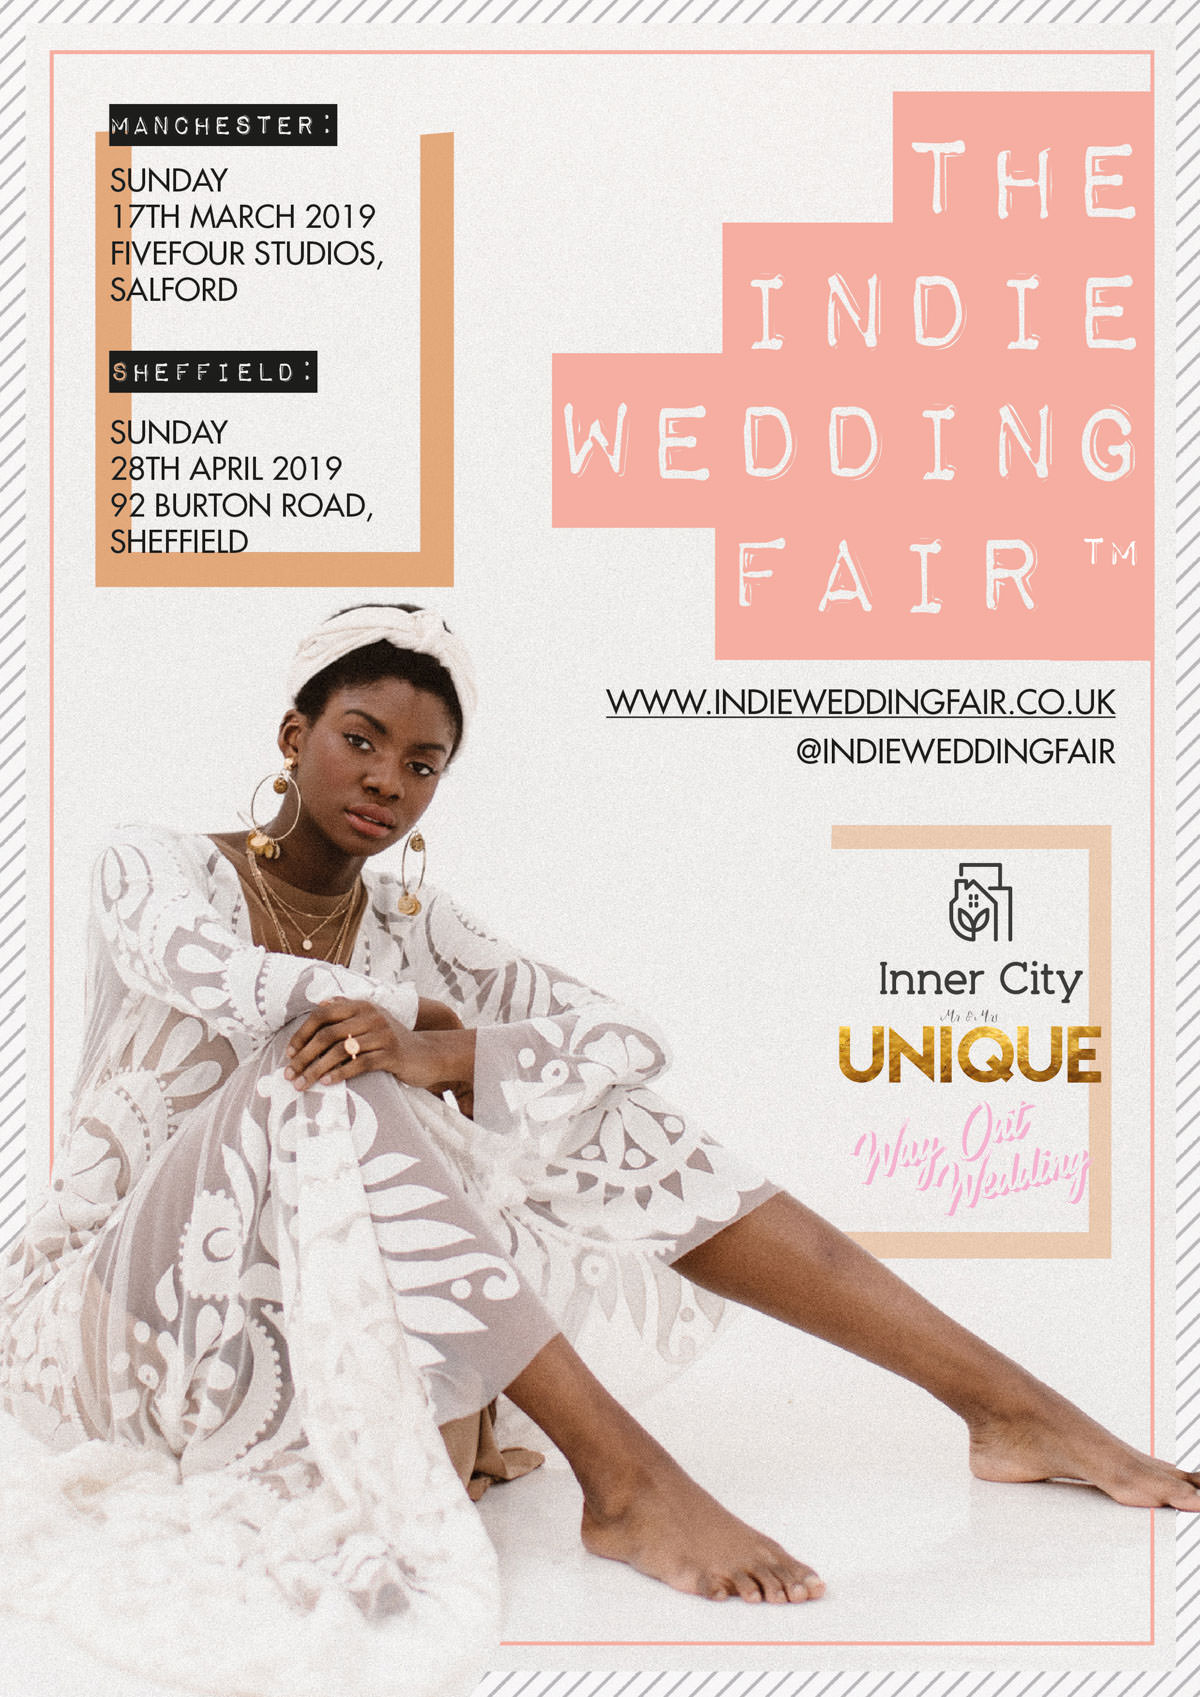 Agnes Black, bridal style, Indie Wedding Fair, innercity weddings, Leeds Wedding fair, Manchester wedding fair, modern bride, open days, Sheffield wedding fair, wedding inspiration, wedding planning, wedding suppliers